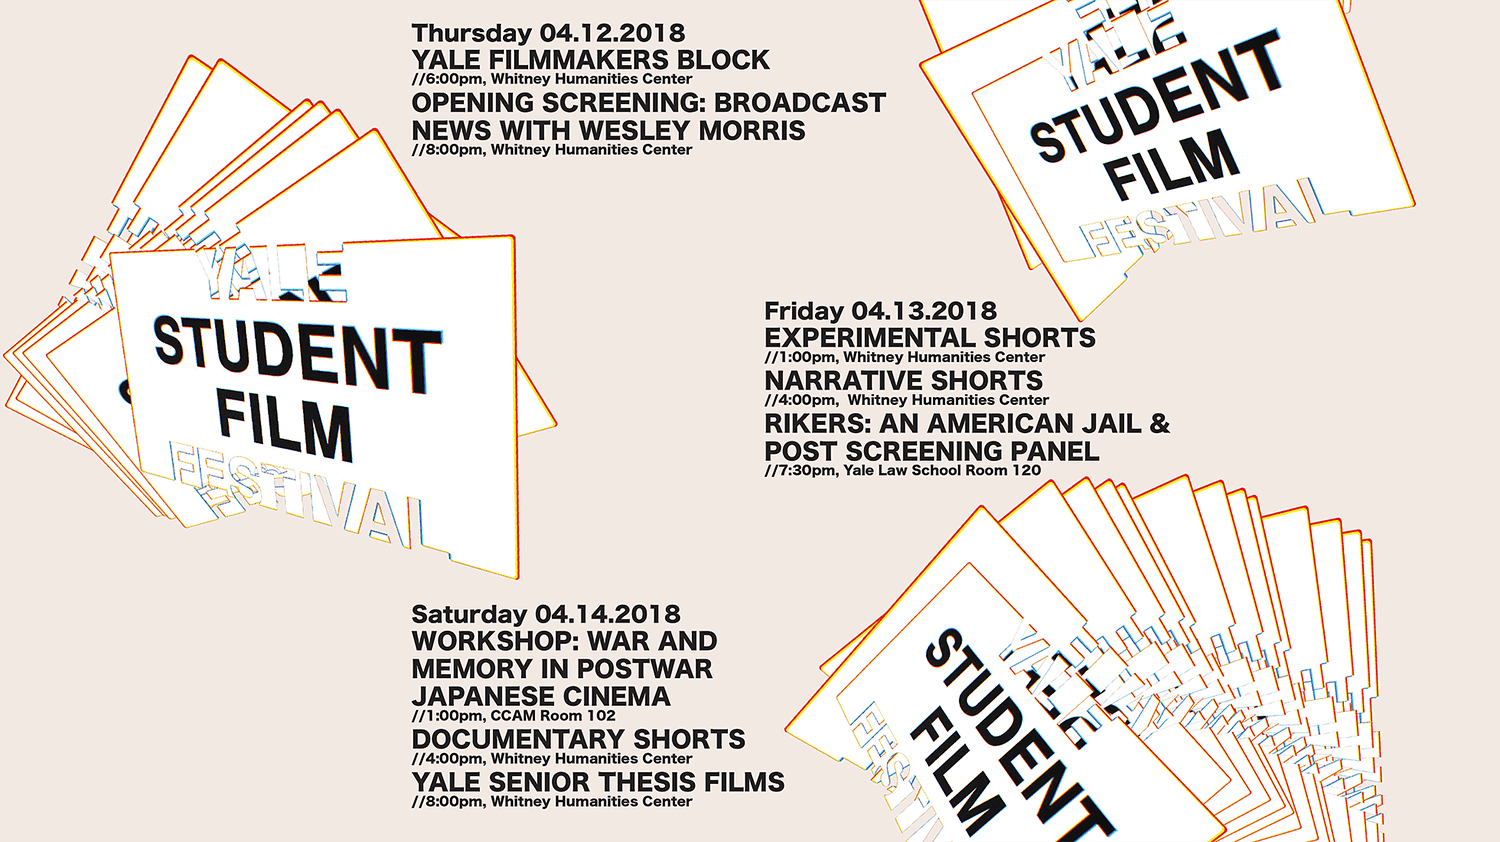 Film As Activism This Week At The Yale Student Film Festival 2018